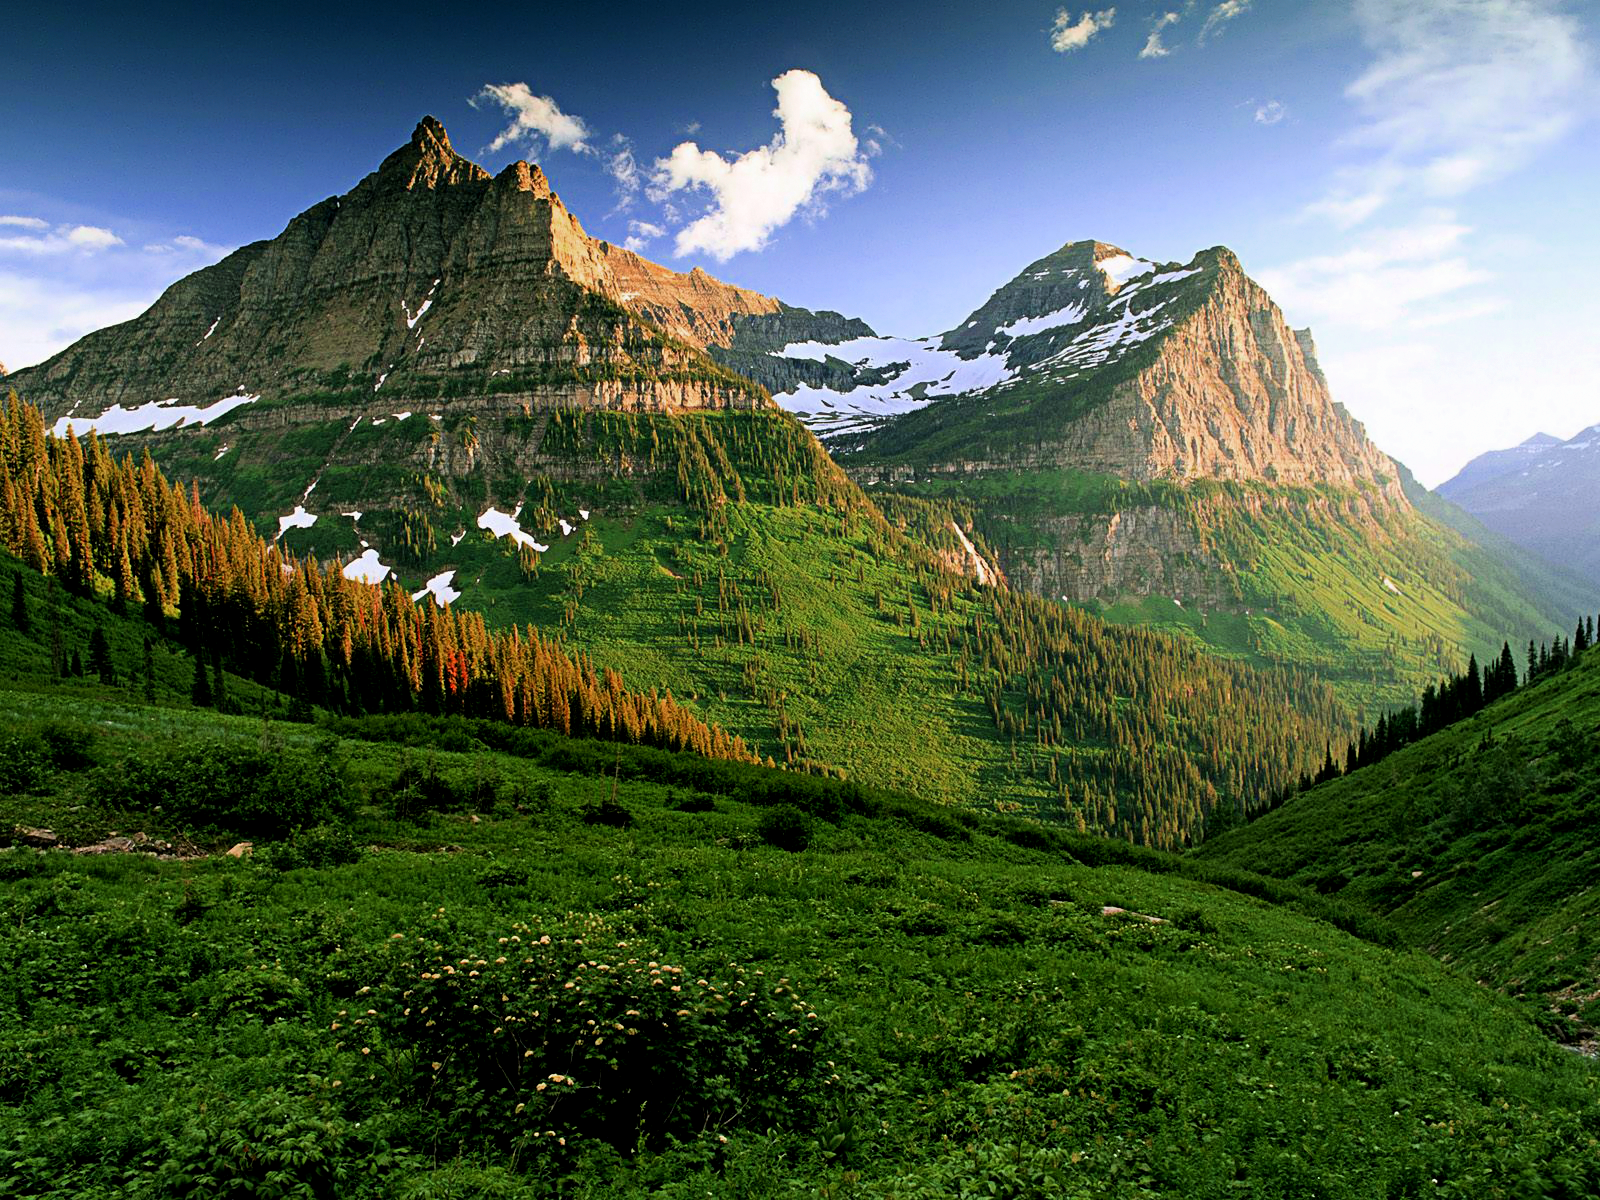 great dolts think alike glacier national park wallpaper the ipad as 1600x1200